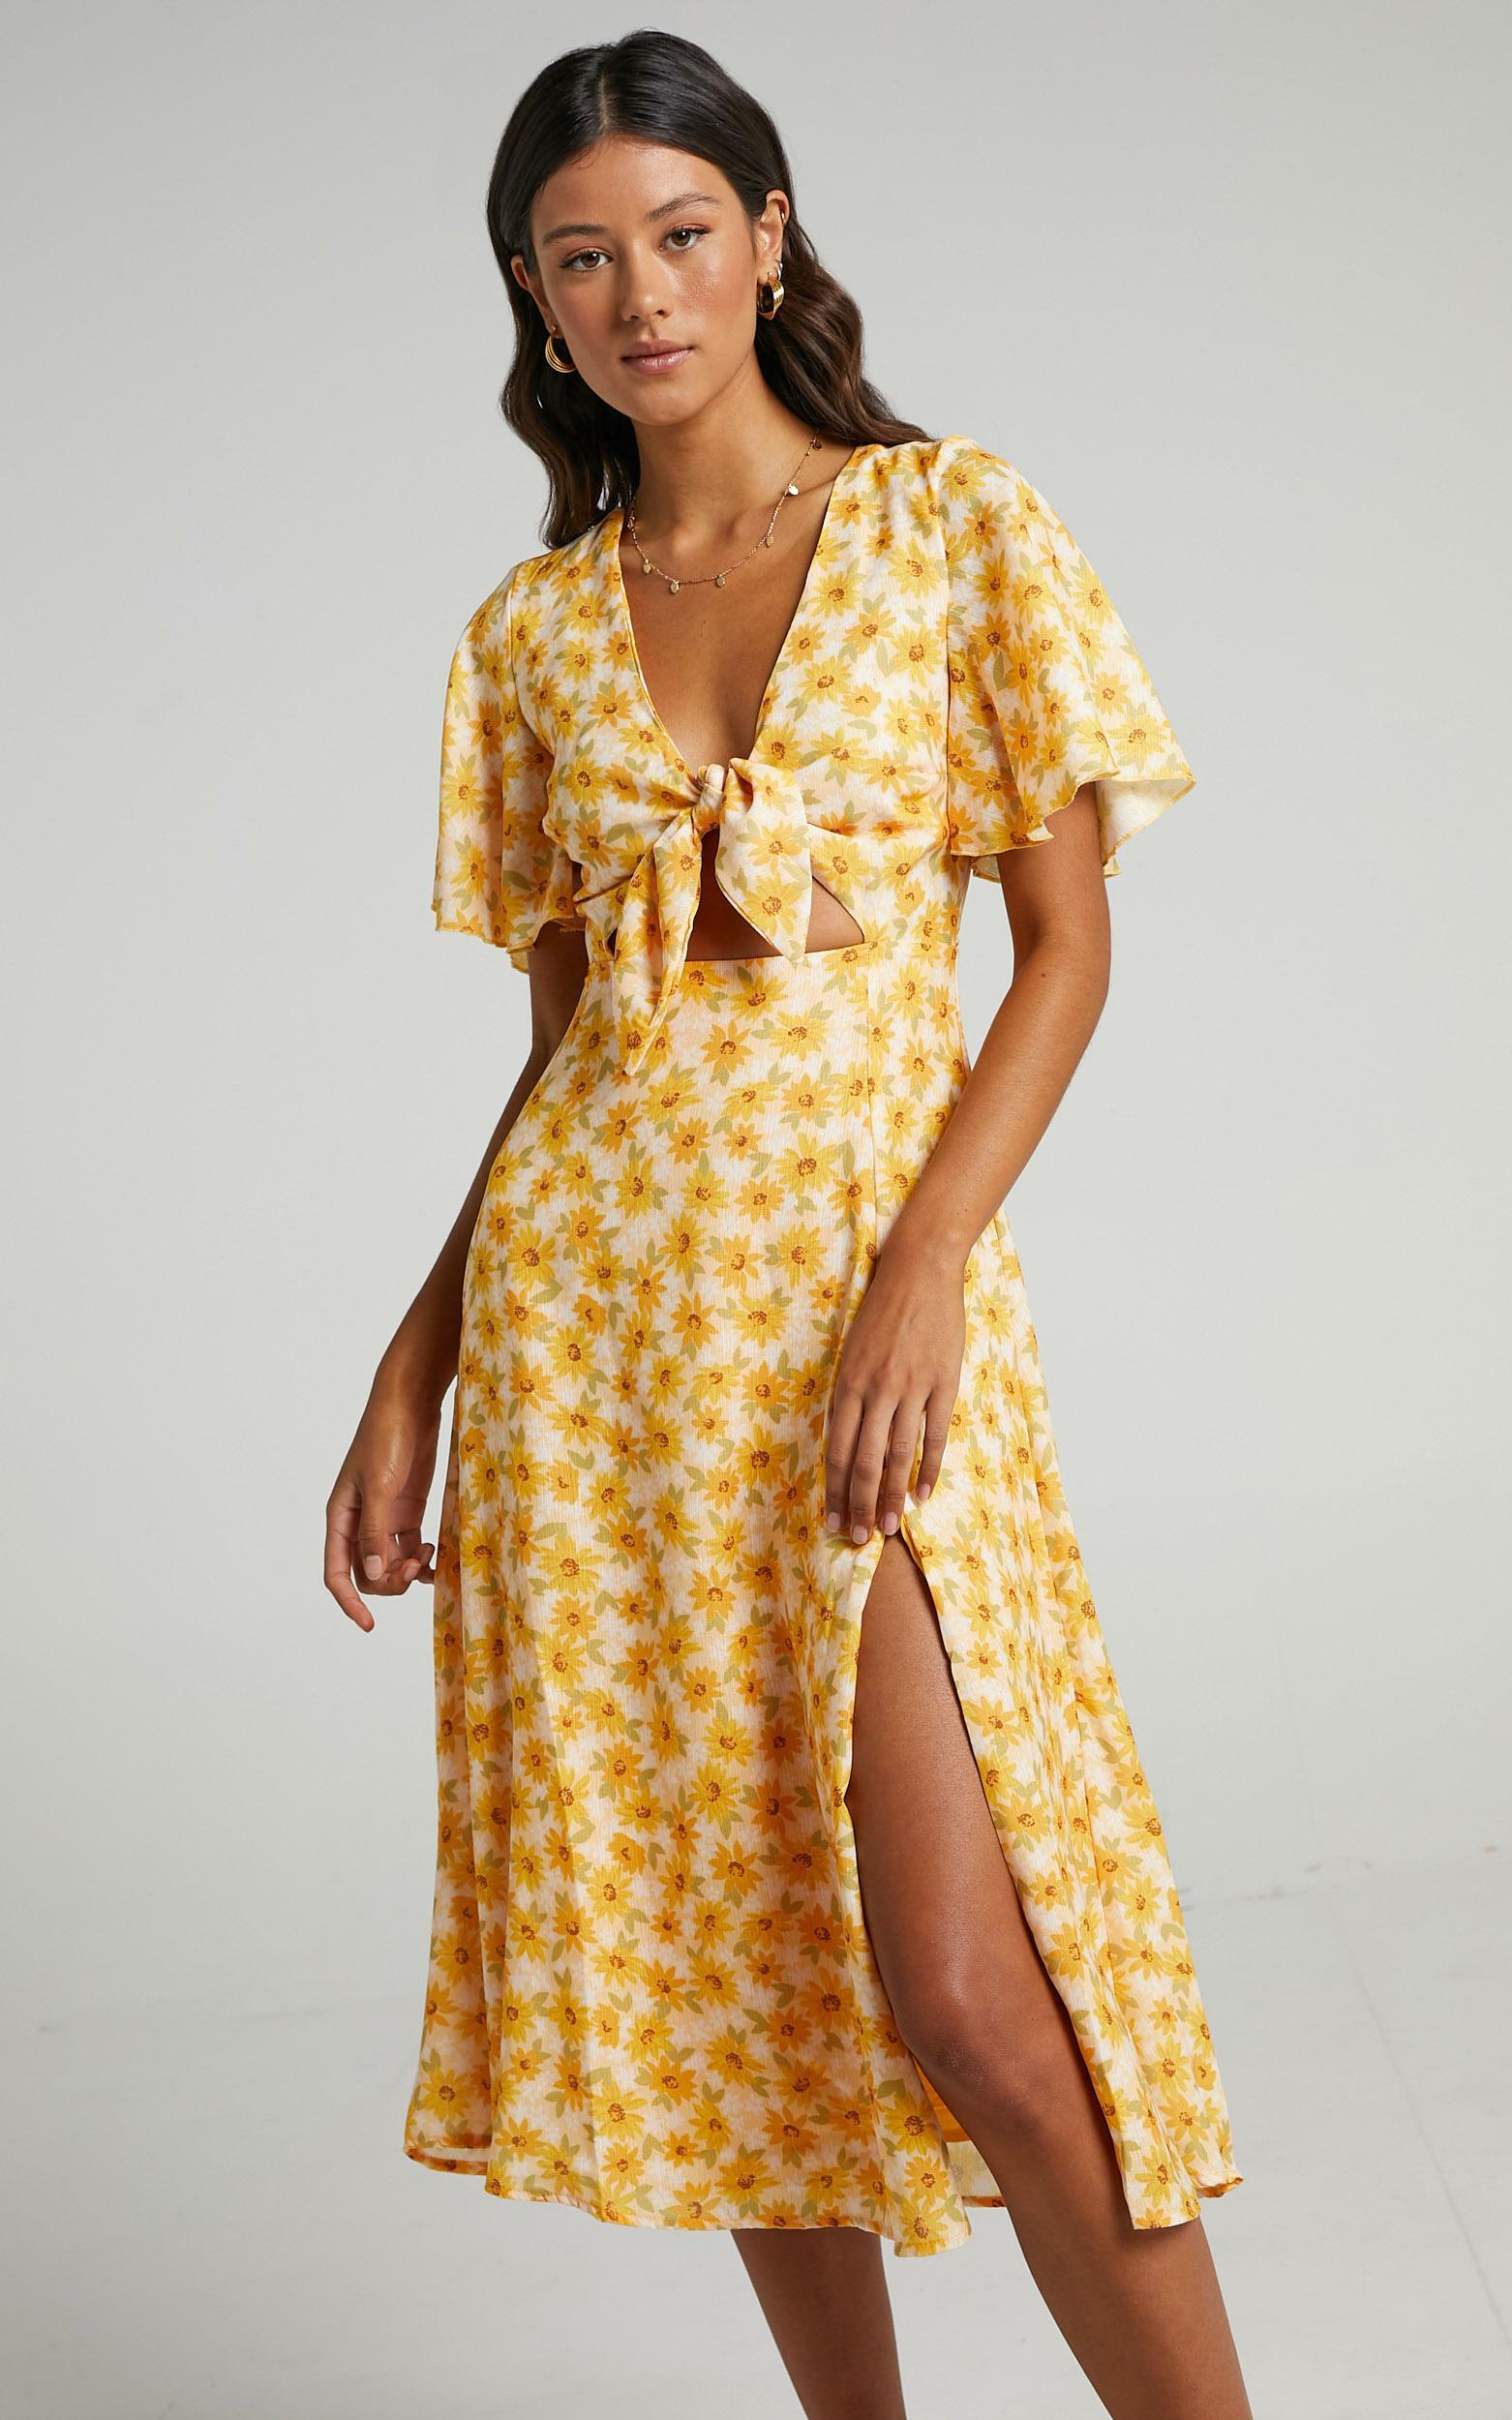 Wild And Free Mind Dress in Sunflower Print - 20, YEL1, hi-res image number null